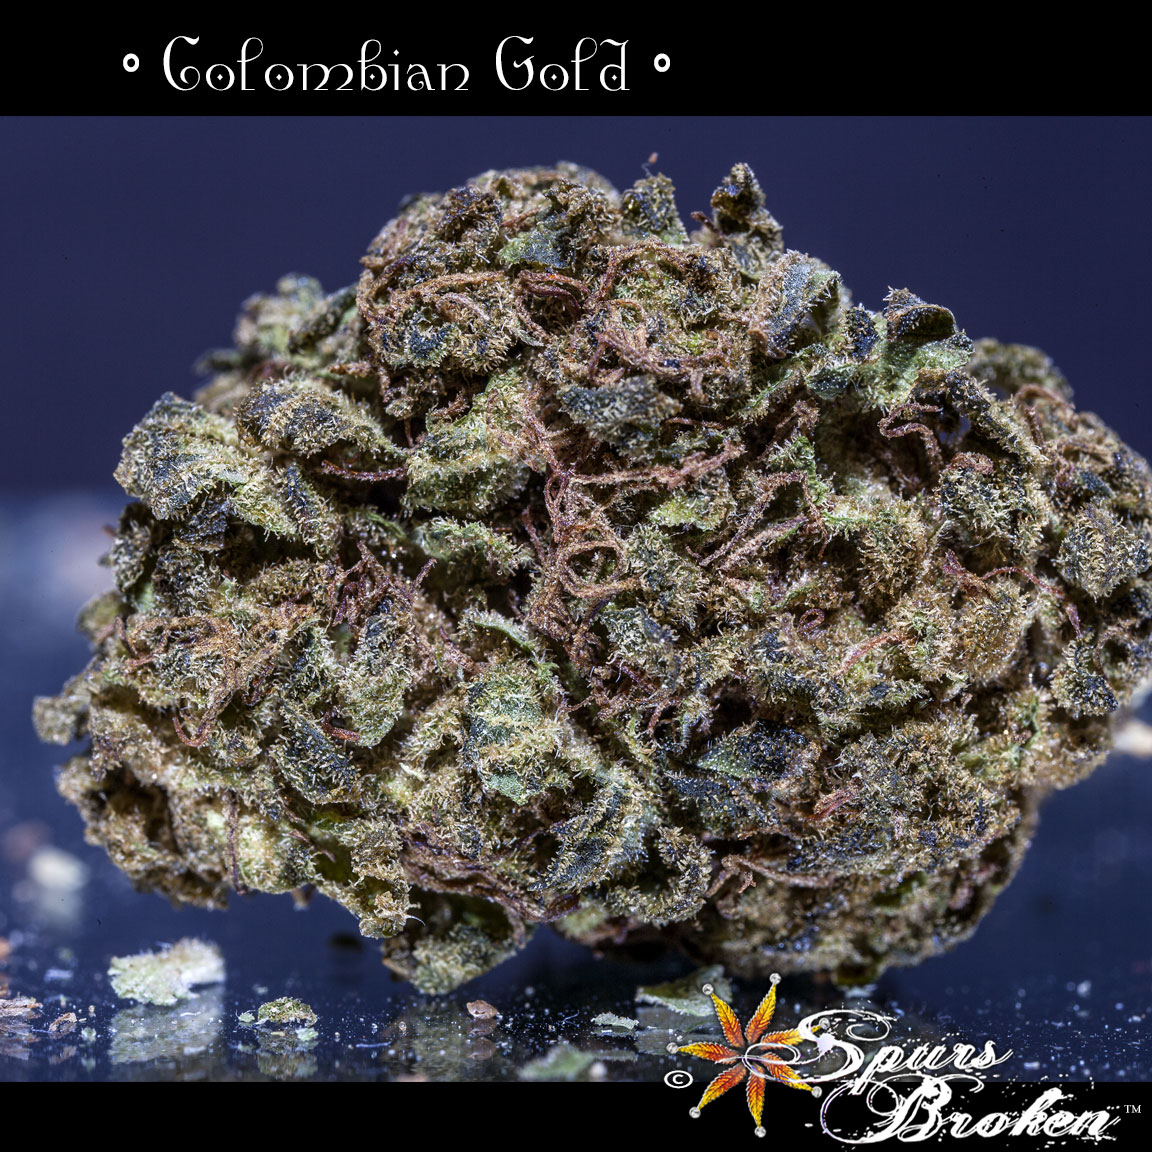 Colombian Gold - Cannabis Macro Photography by Spurs Broken (Robert R. Sanders)